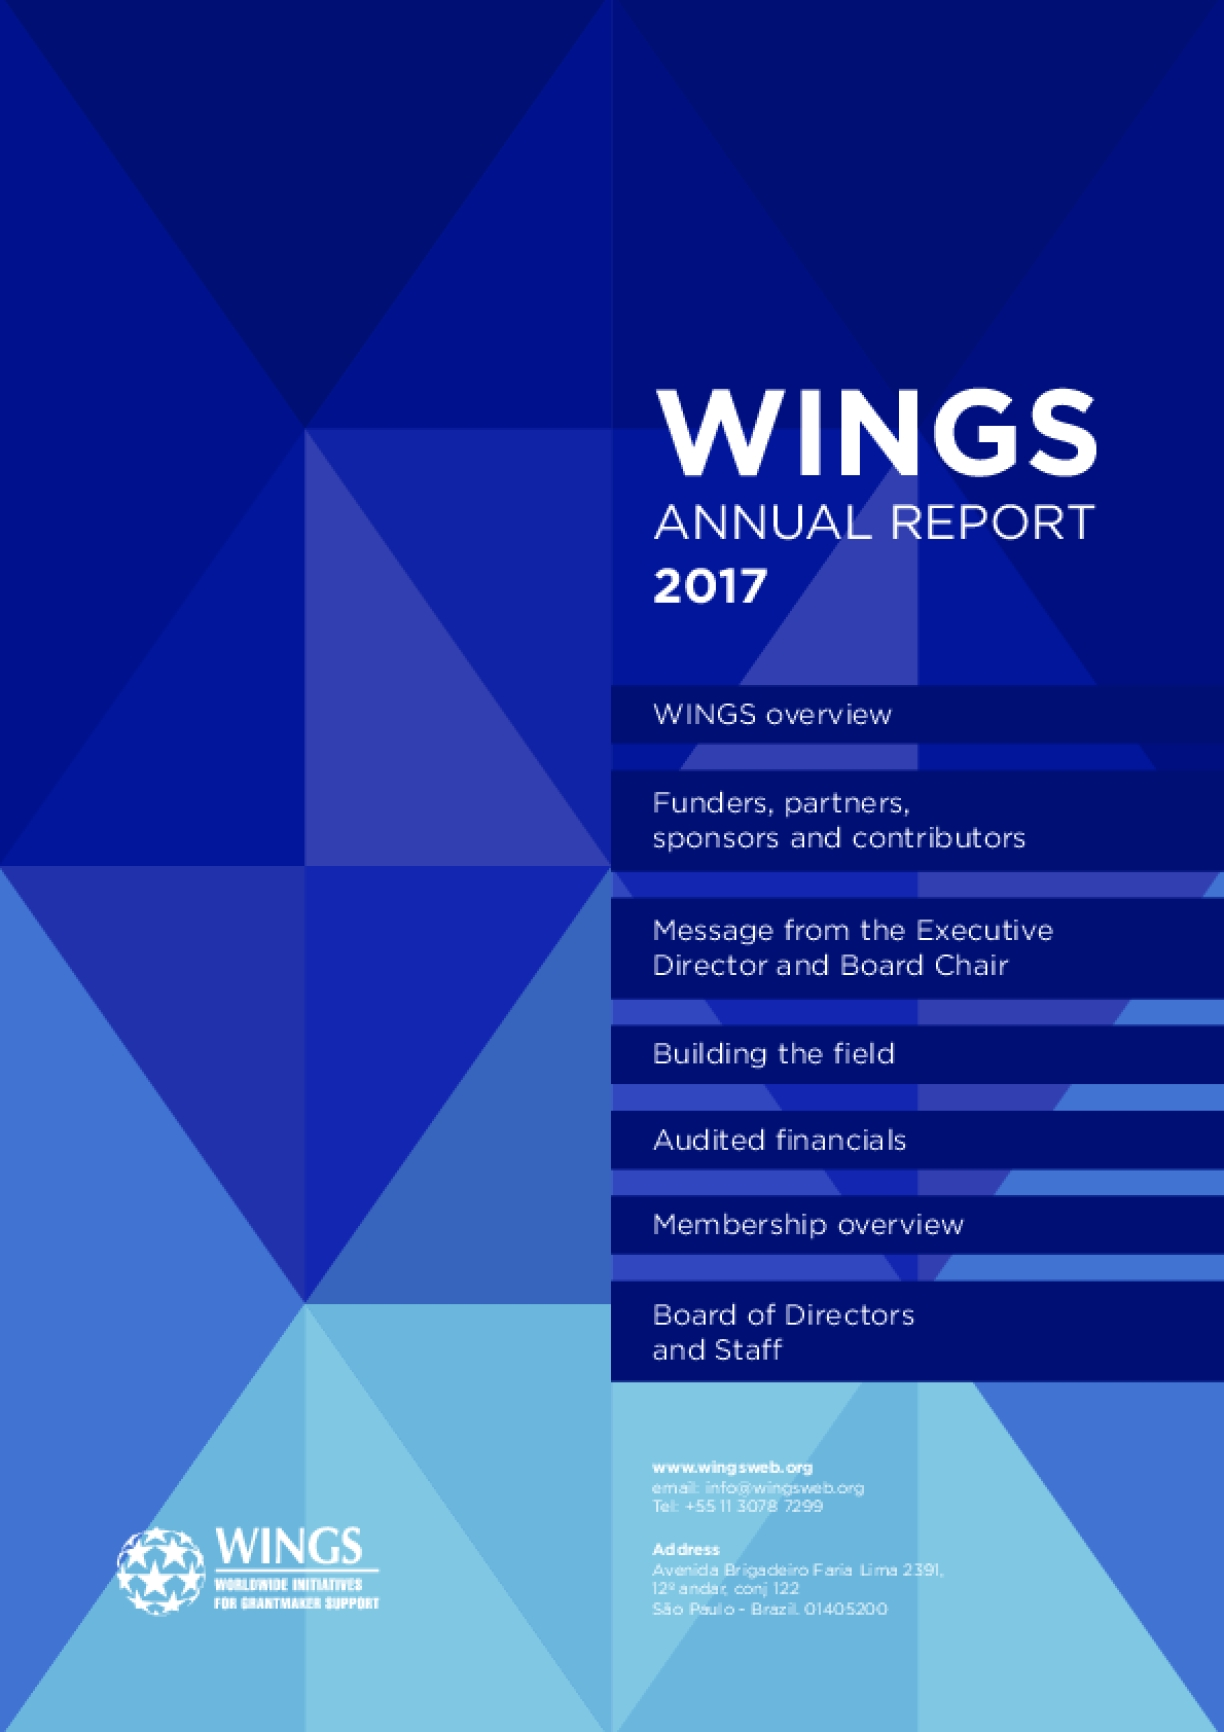 WINGS Annual Report